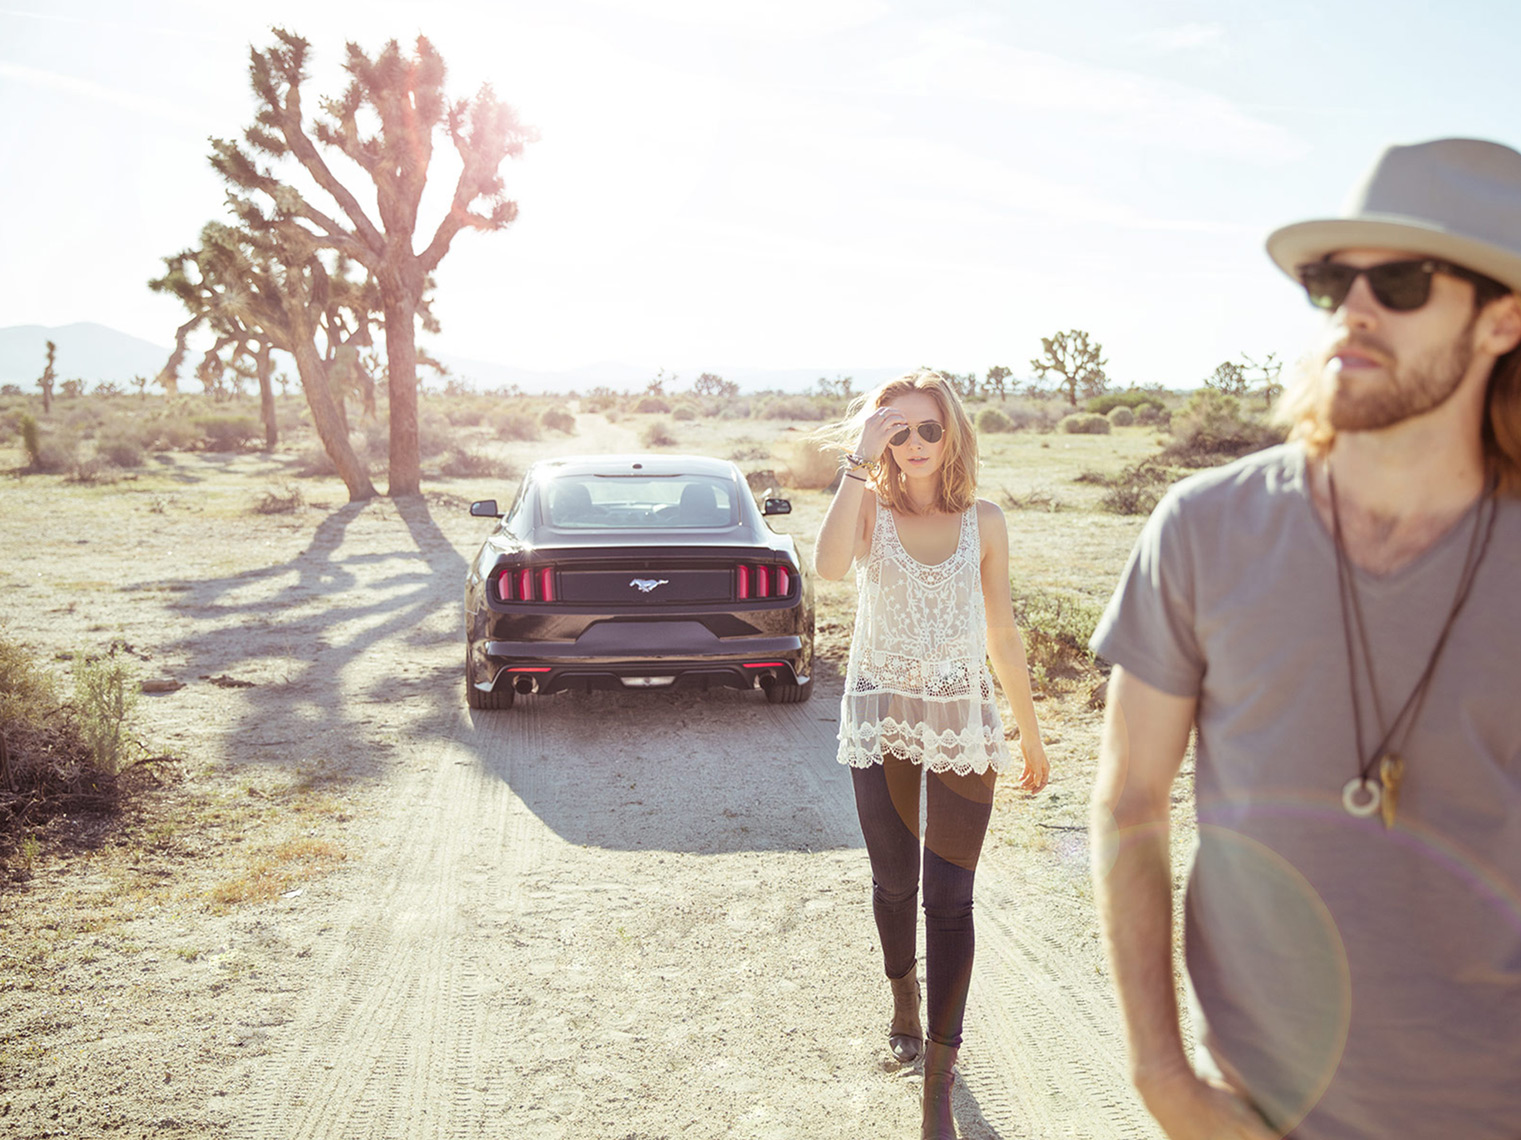 Christopher Nelson Photography|Ford Black Mustang|Desert